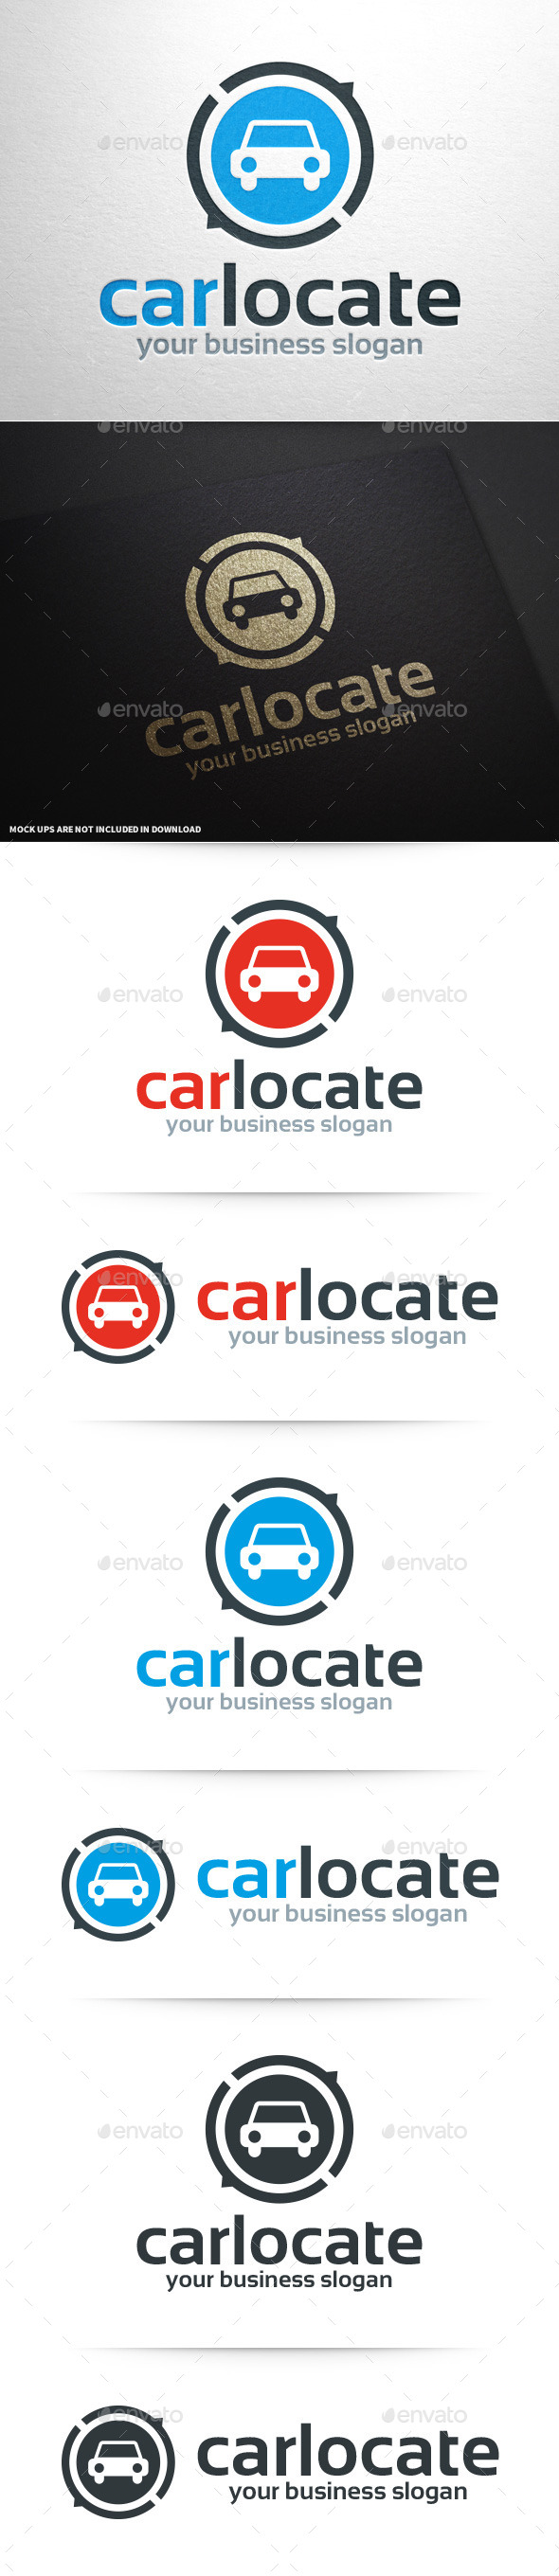 Car Locate Logo Template